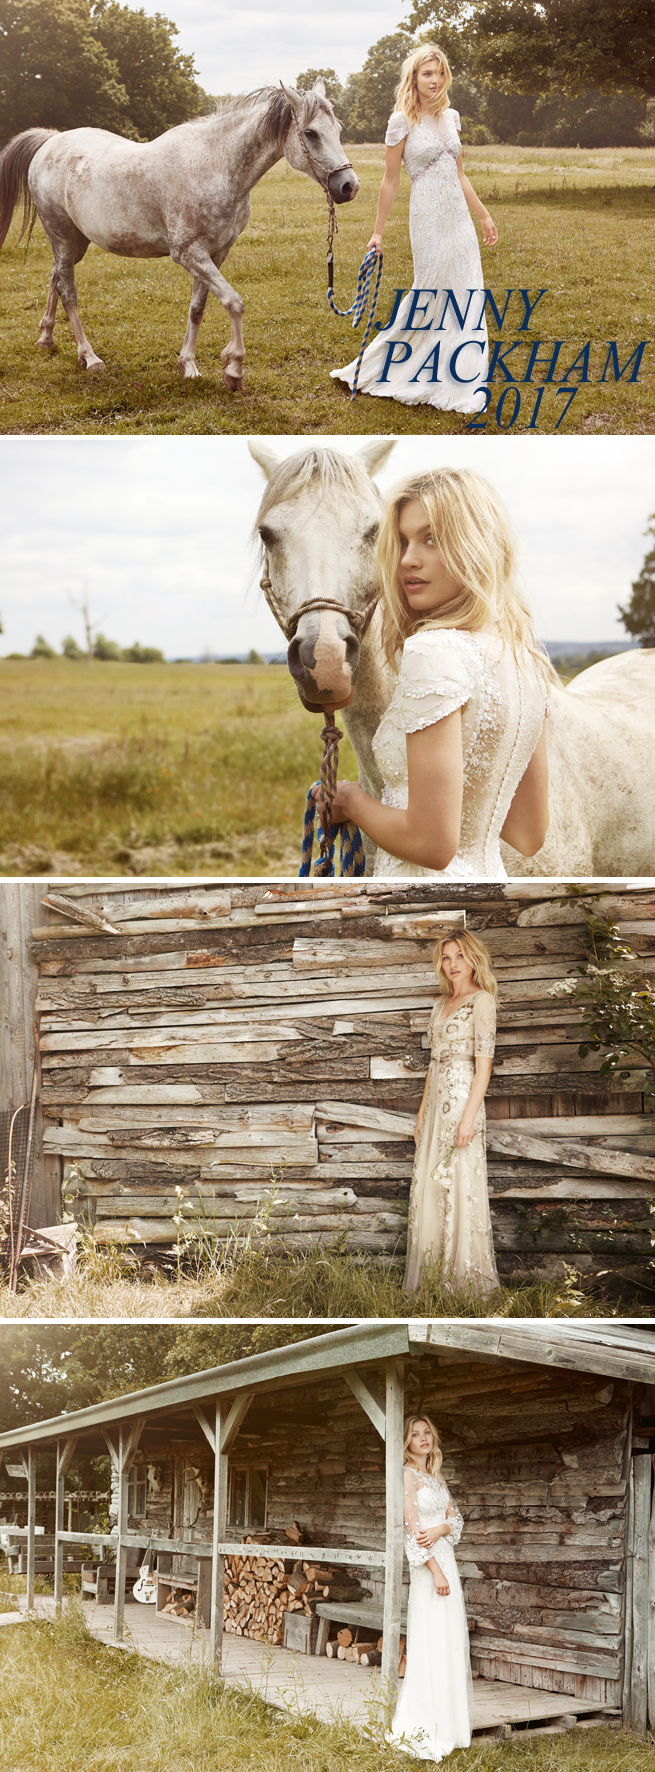 Perfect Wedding Magazine, Perfect Wedding Blog, Perfect Wedding Reports, Bridal Trends, 2017 Bridal Gowns, Caroline Corinth, Jane McLeish-Kelsey, Jenny Packham, Jenny Packham Bridal, Jenny Packham 2017 Bridal collection,